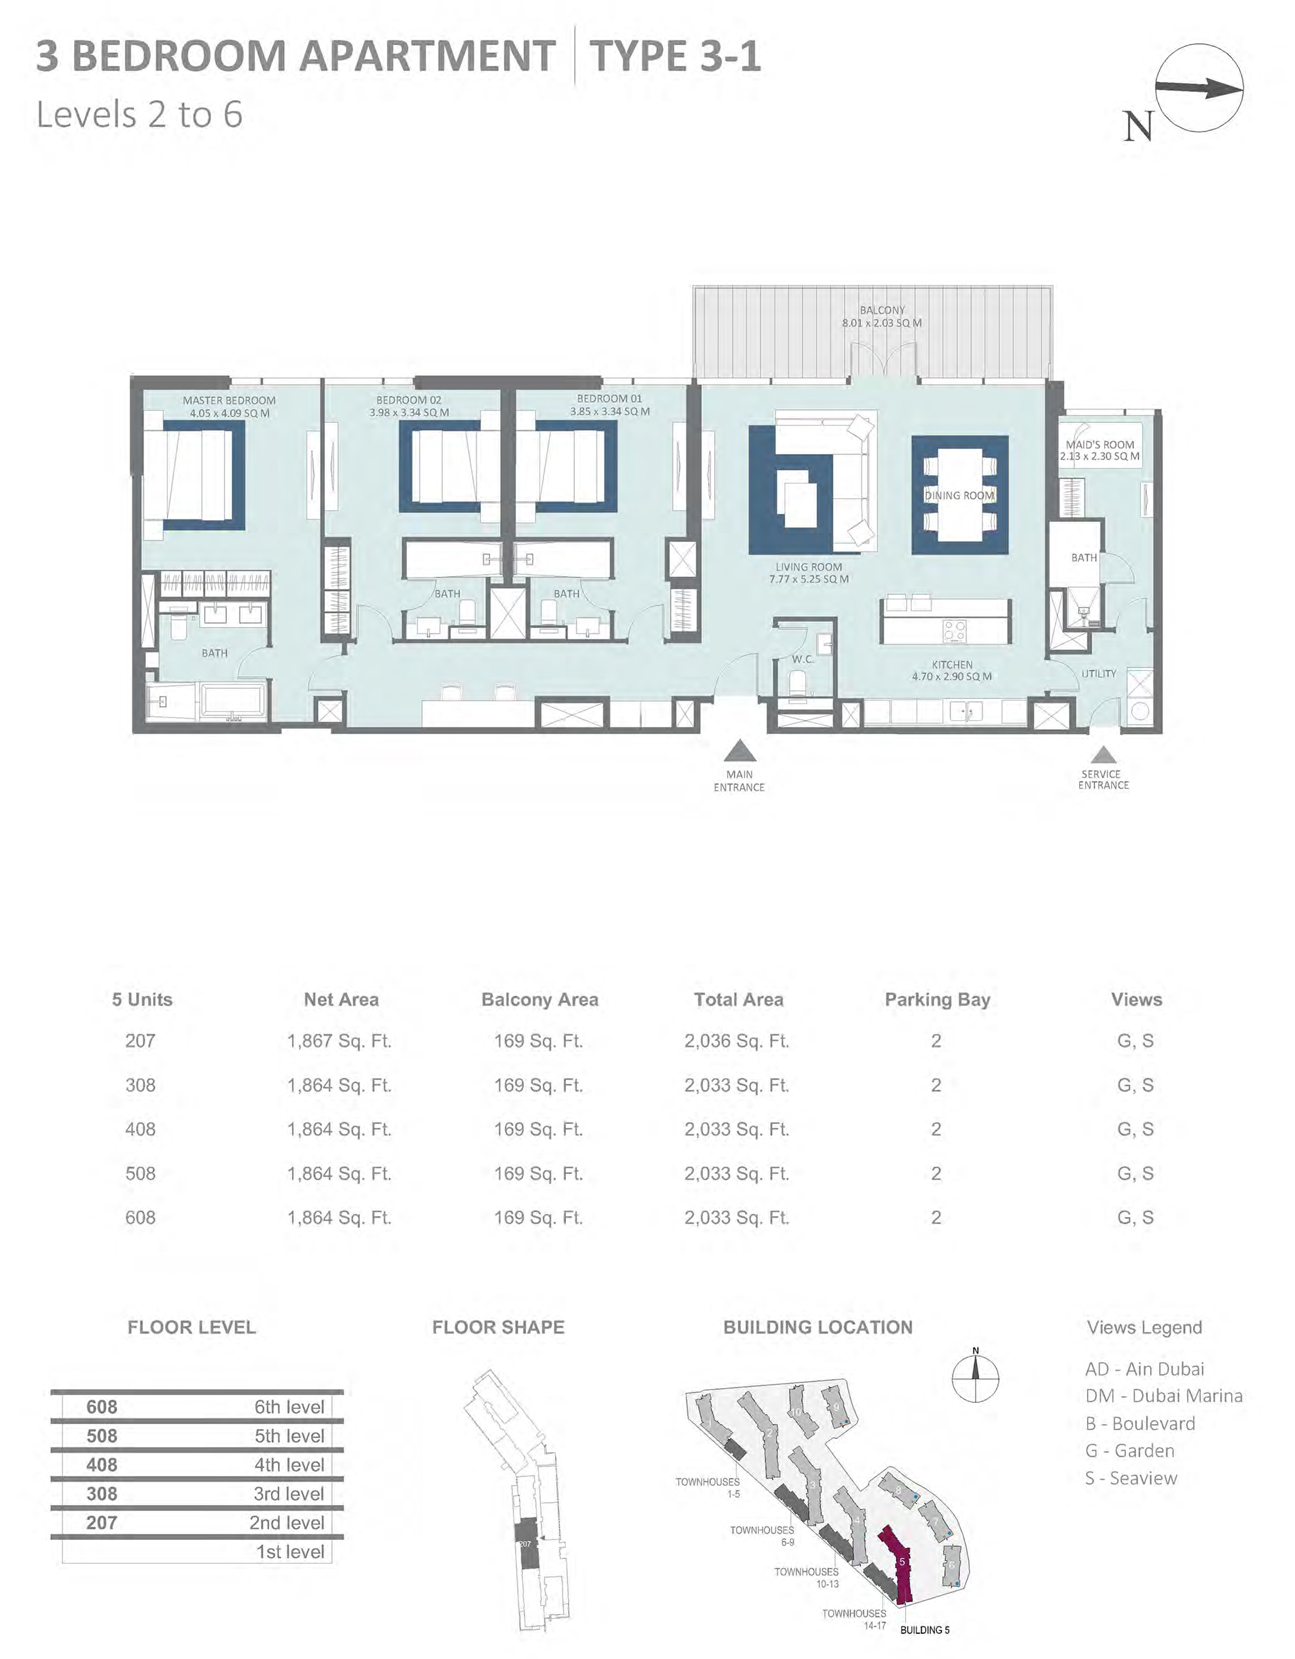 Building 5 - 3 Bedroom Type 3-1 Level 2-6 , Size 2036    sq. ft.